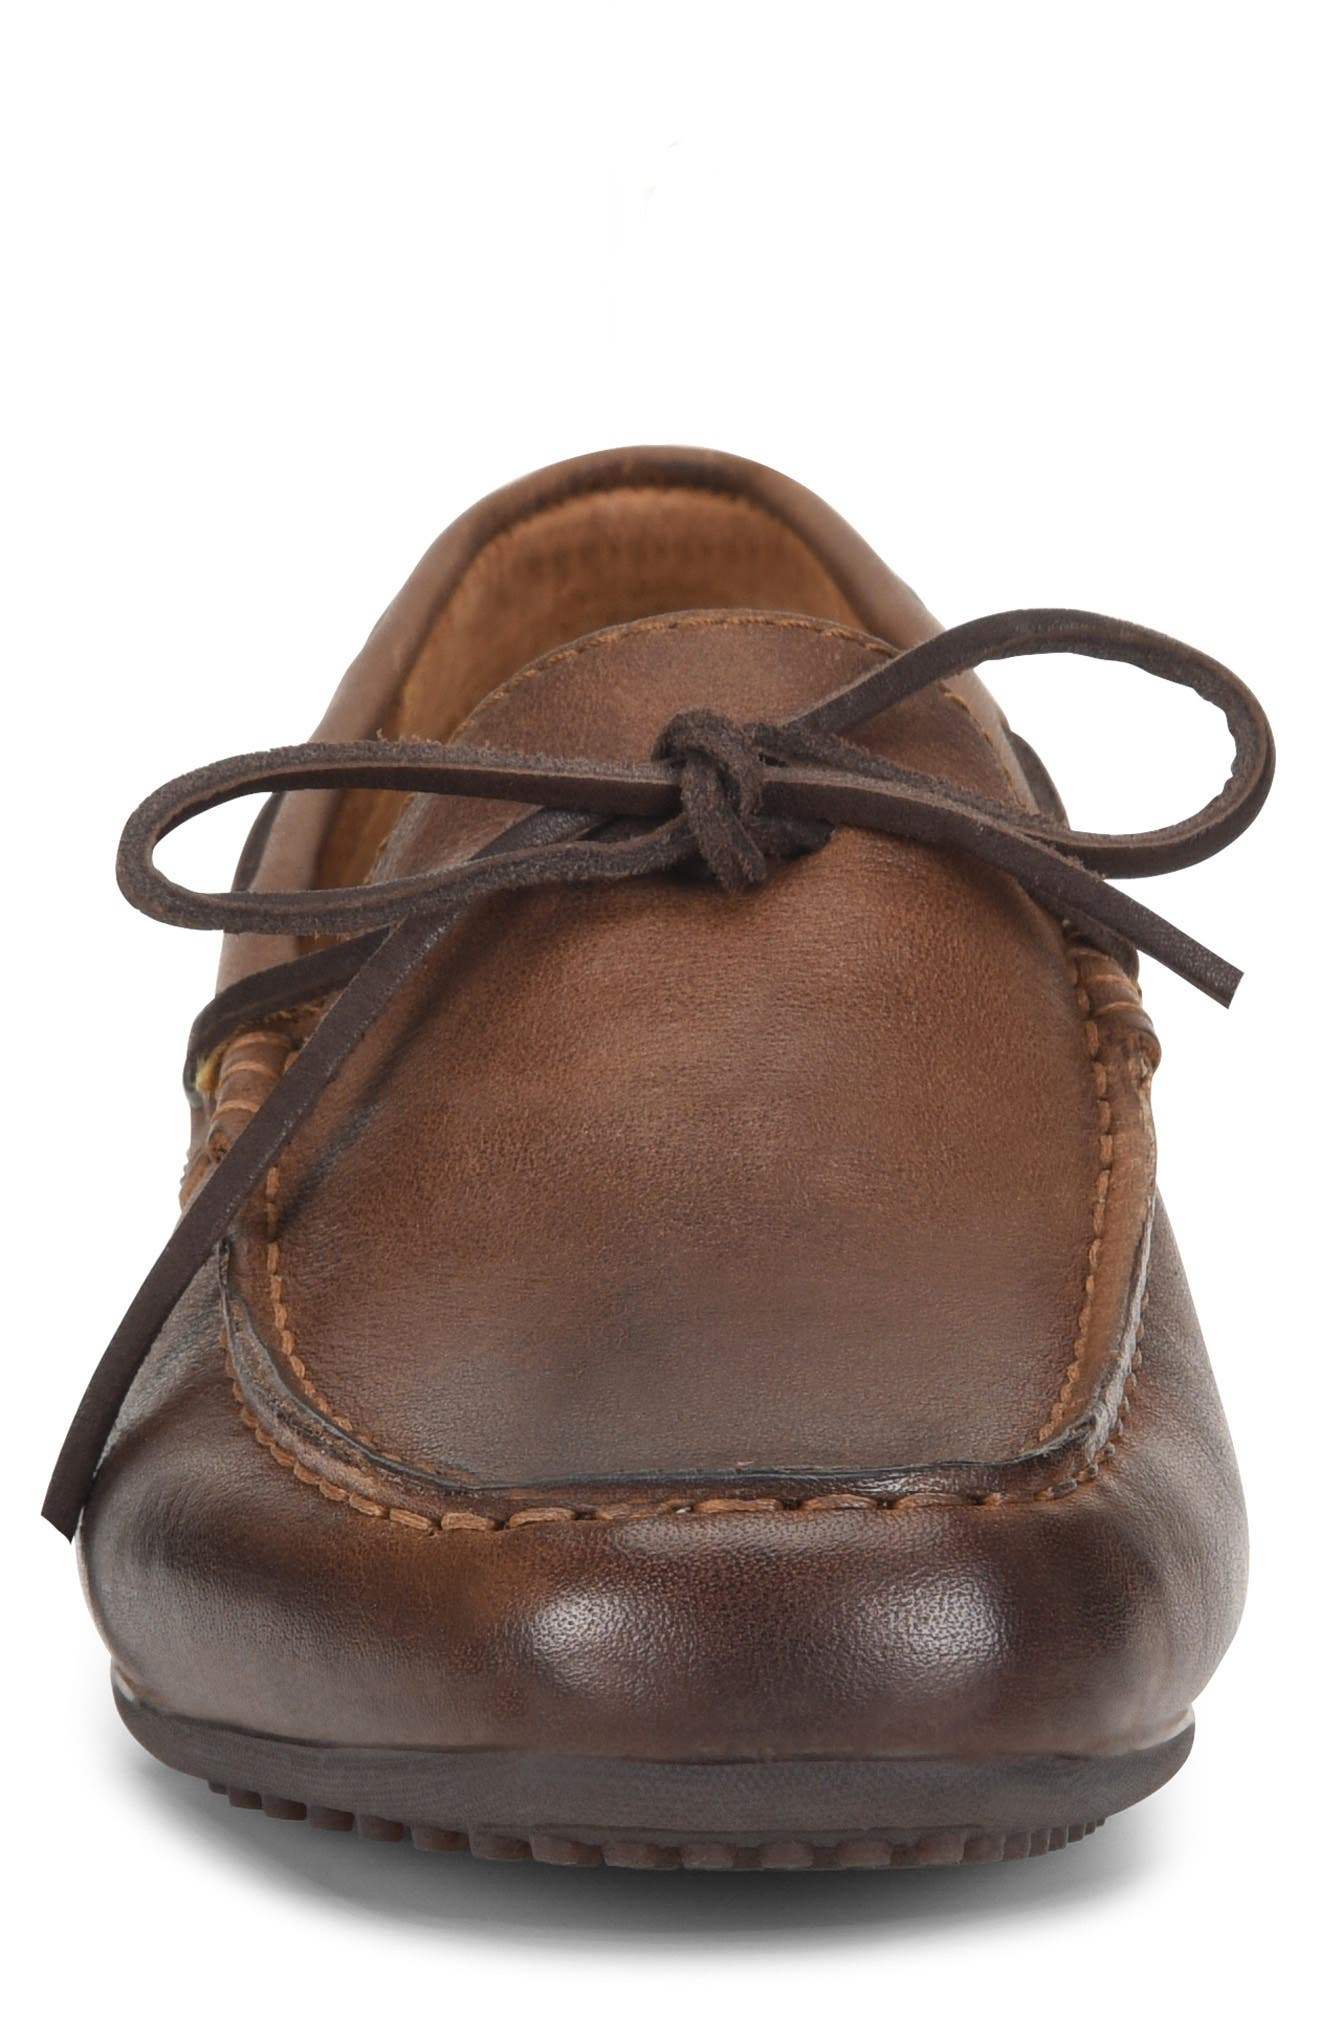 Virgo Driving Shoe,                             Alternate thumbnail 4, color,                             BROWN/BROWN LEATHER